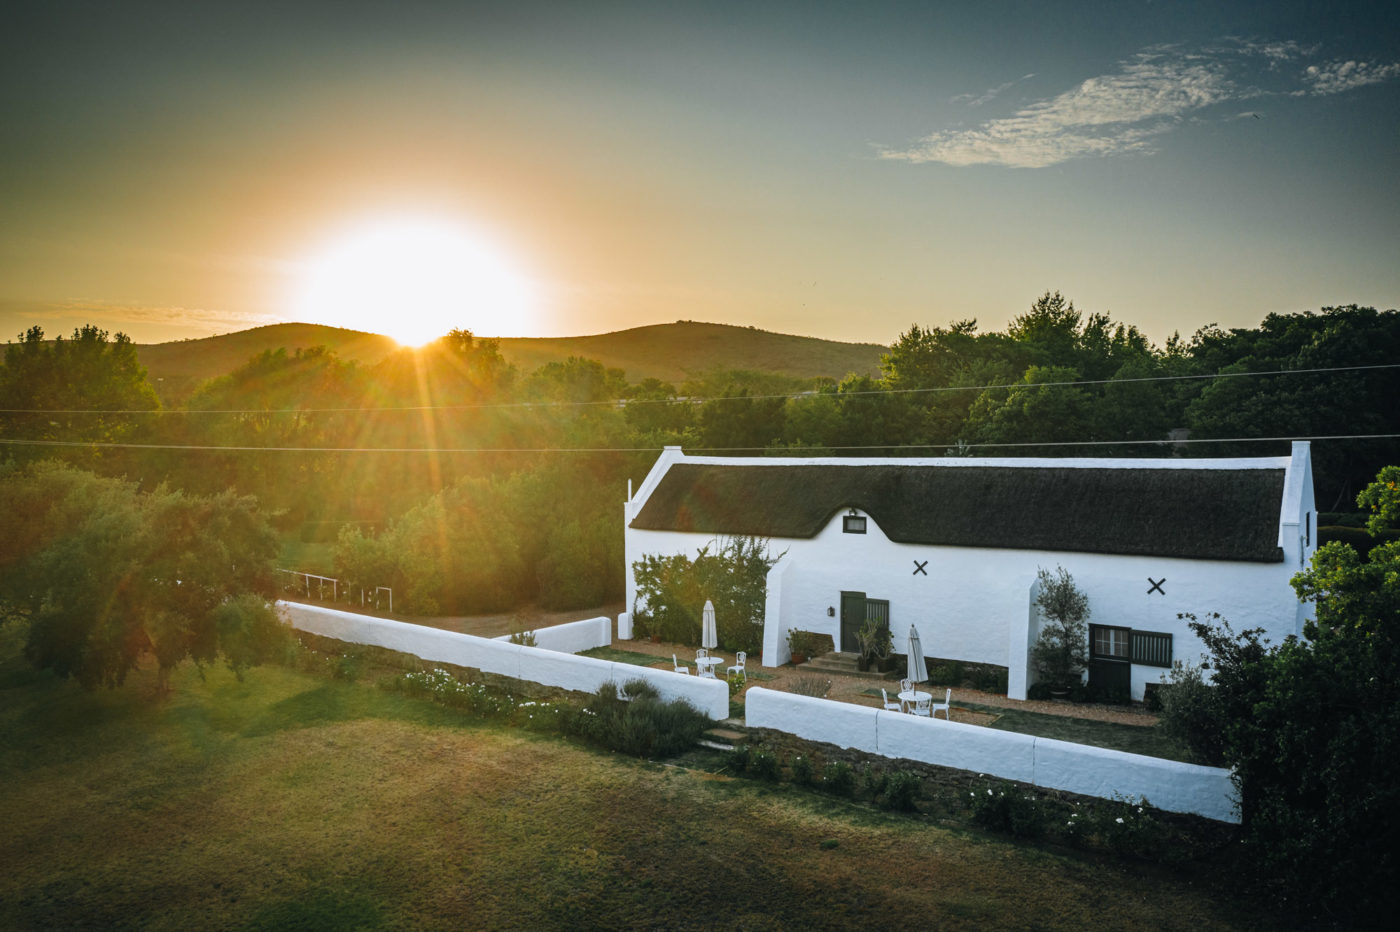 Jan Harmsgat Country House & Farm, Swellendam, South Africa